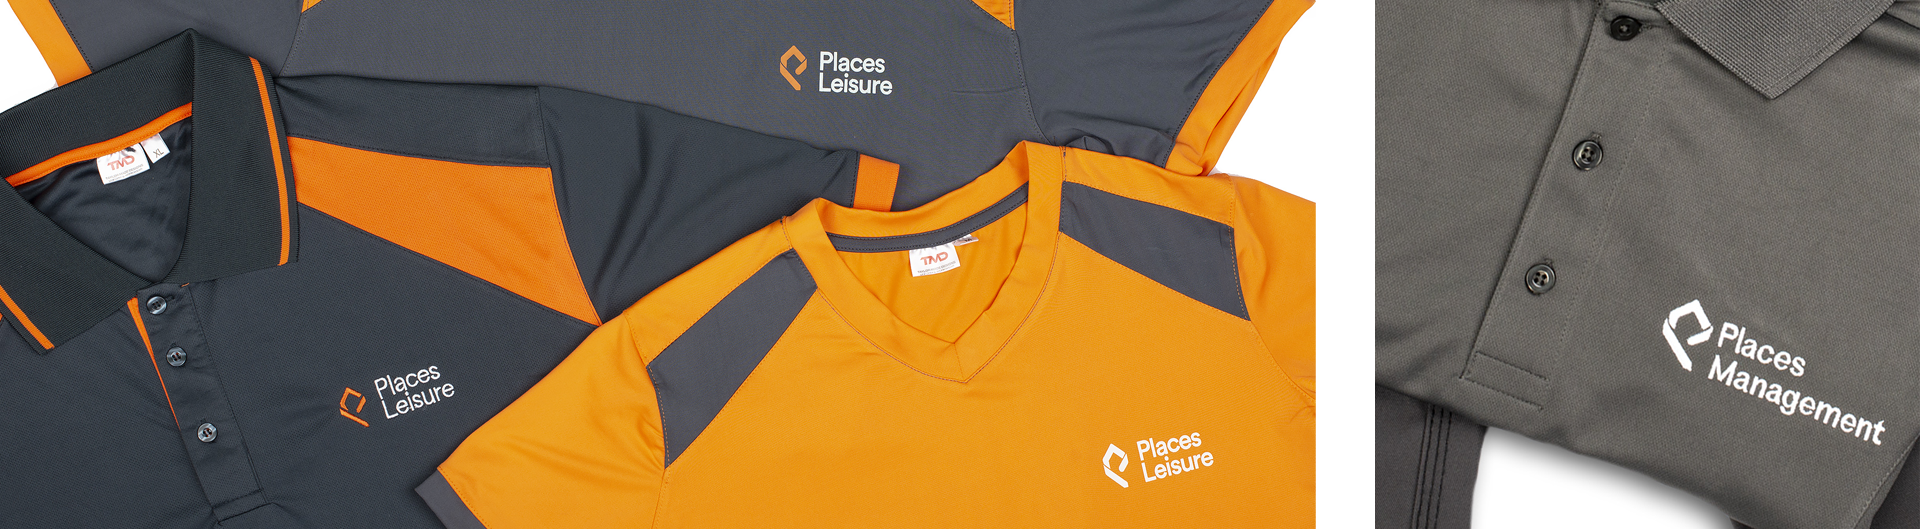 Places Leisure Case Study Banner